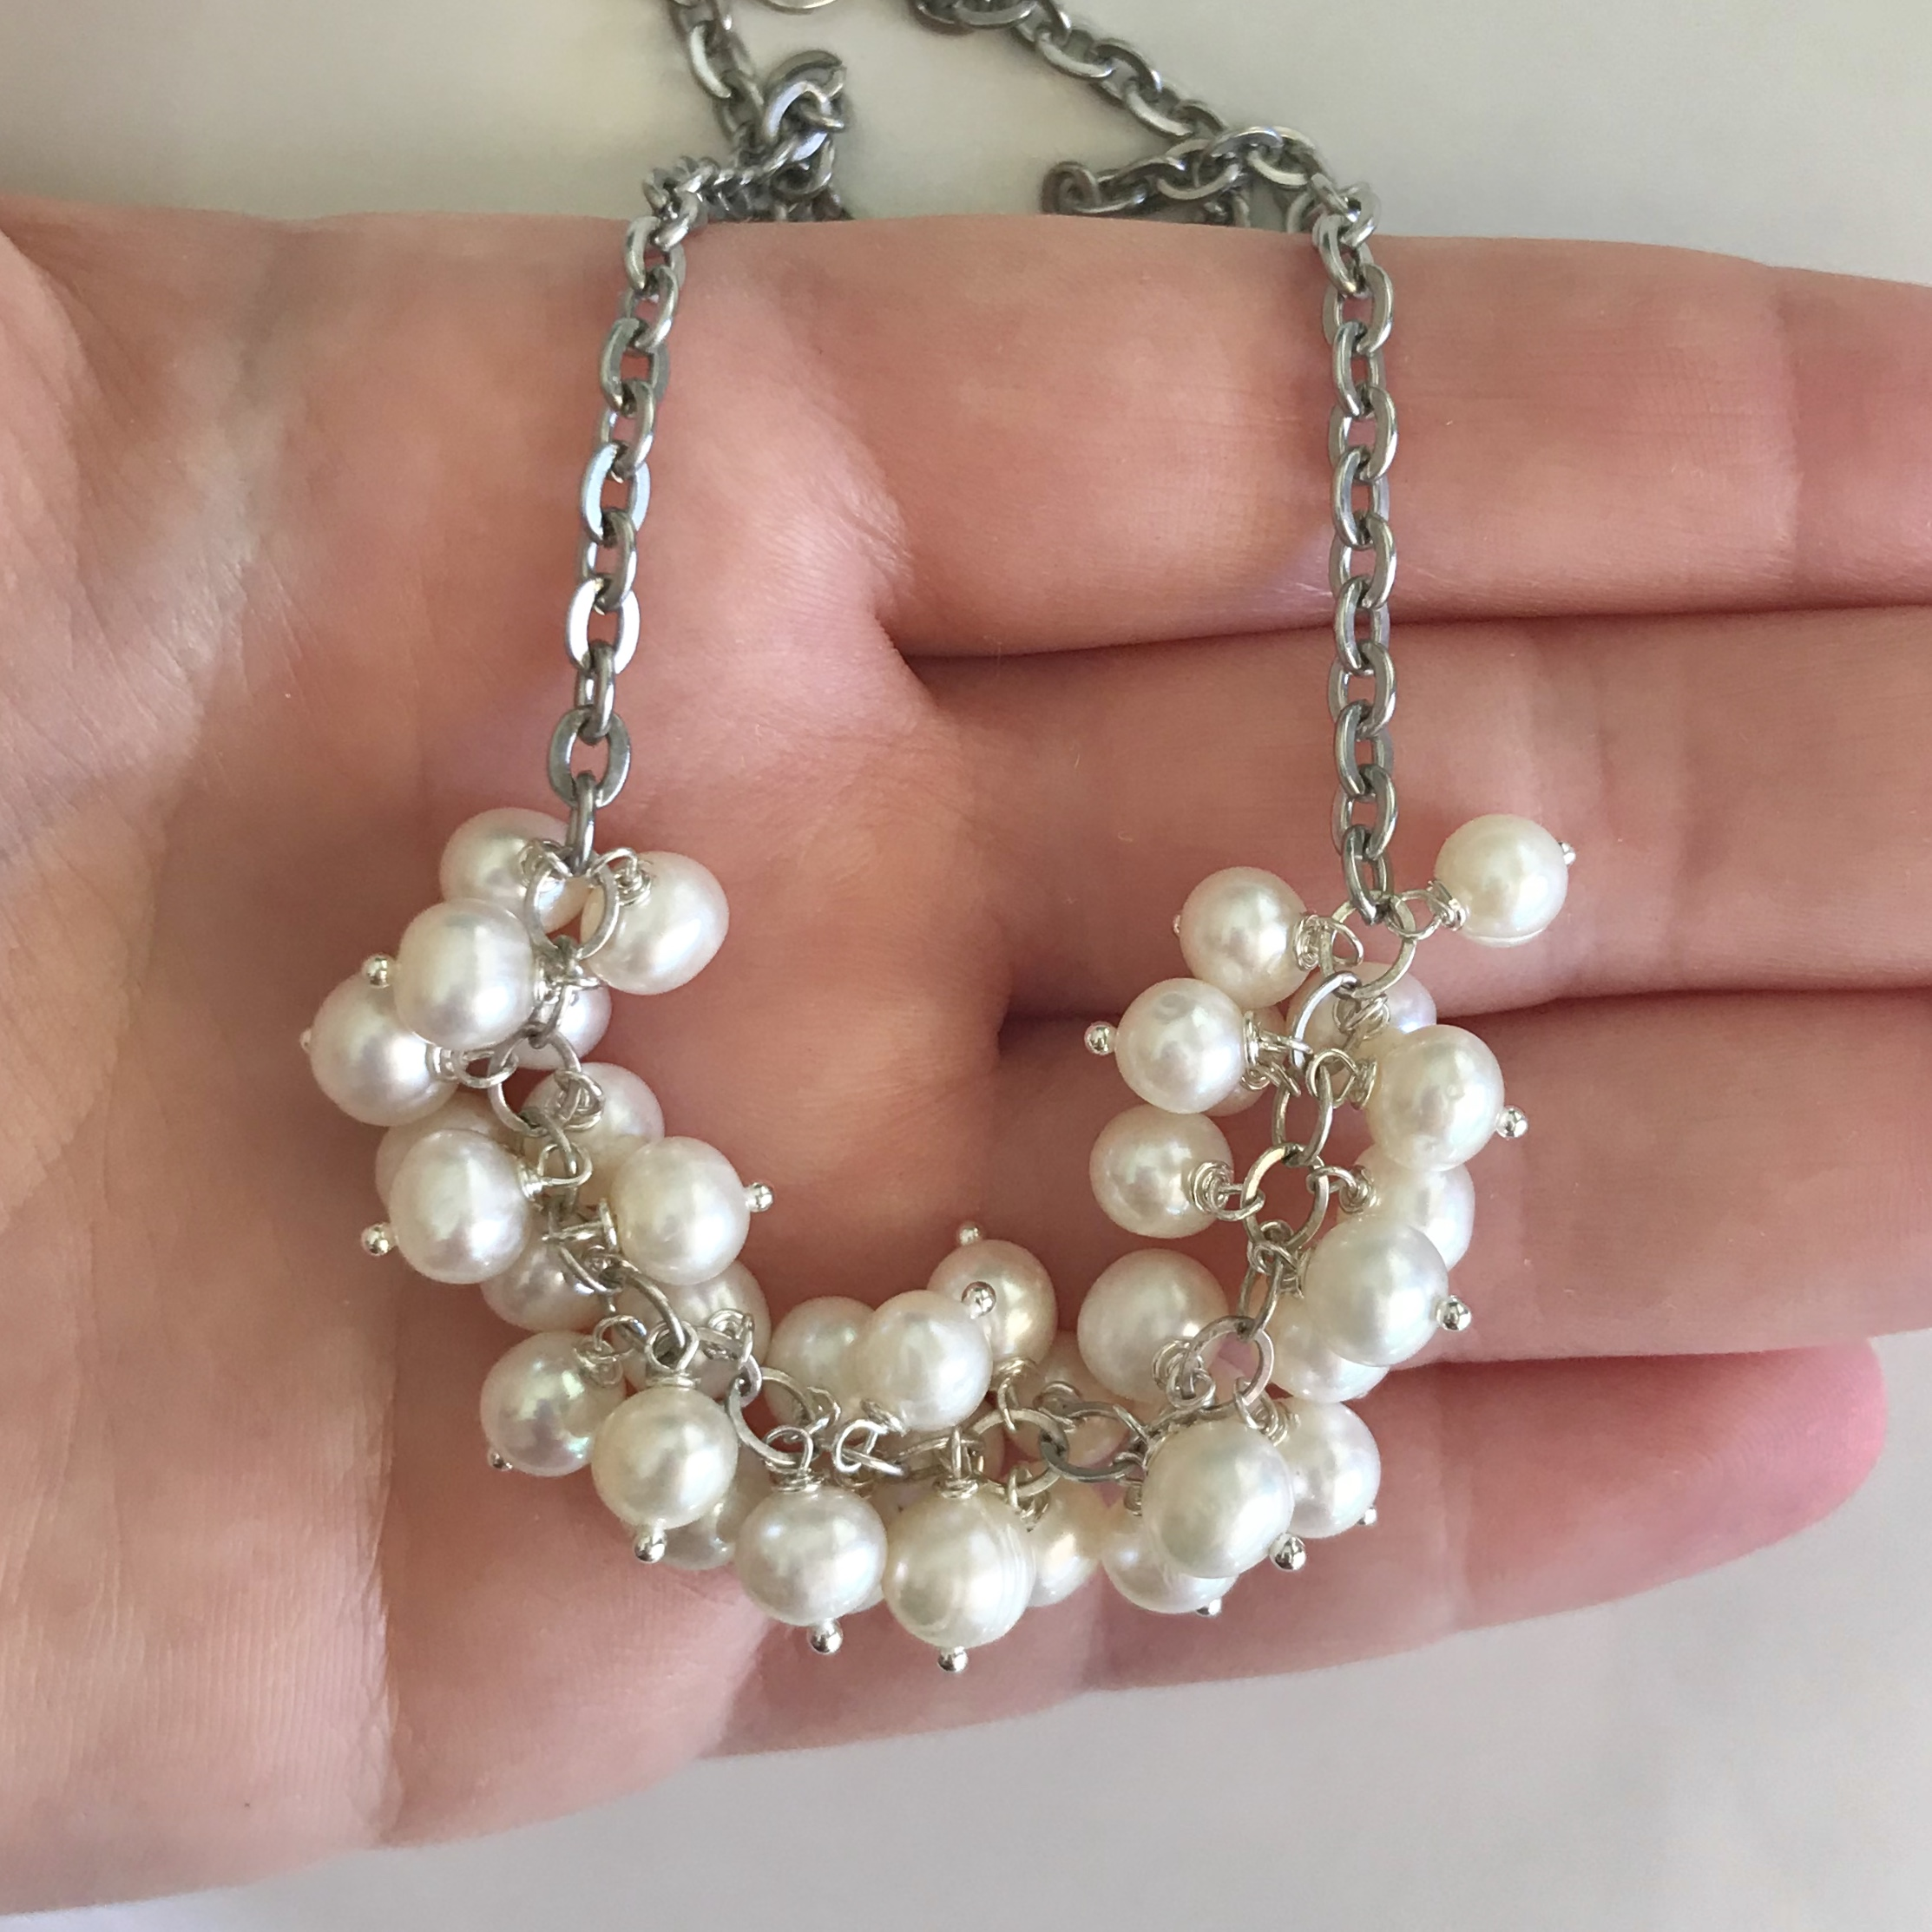 Freshwater Pearls - Cultured white freshwater pearls are common in our designs too. Each is slightly different in shape since they are from nature.